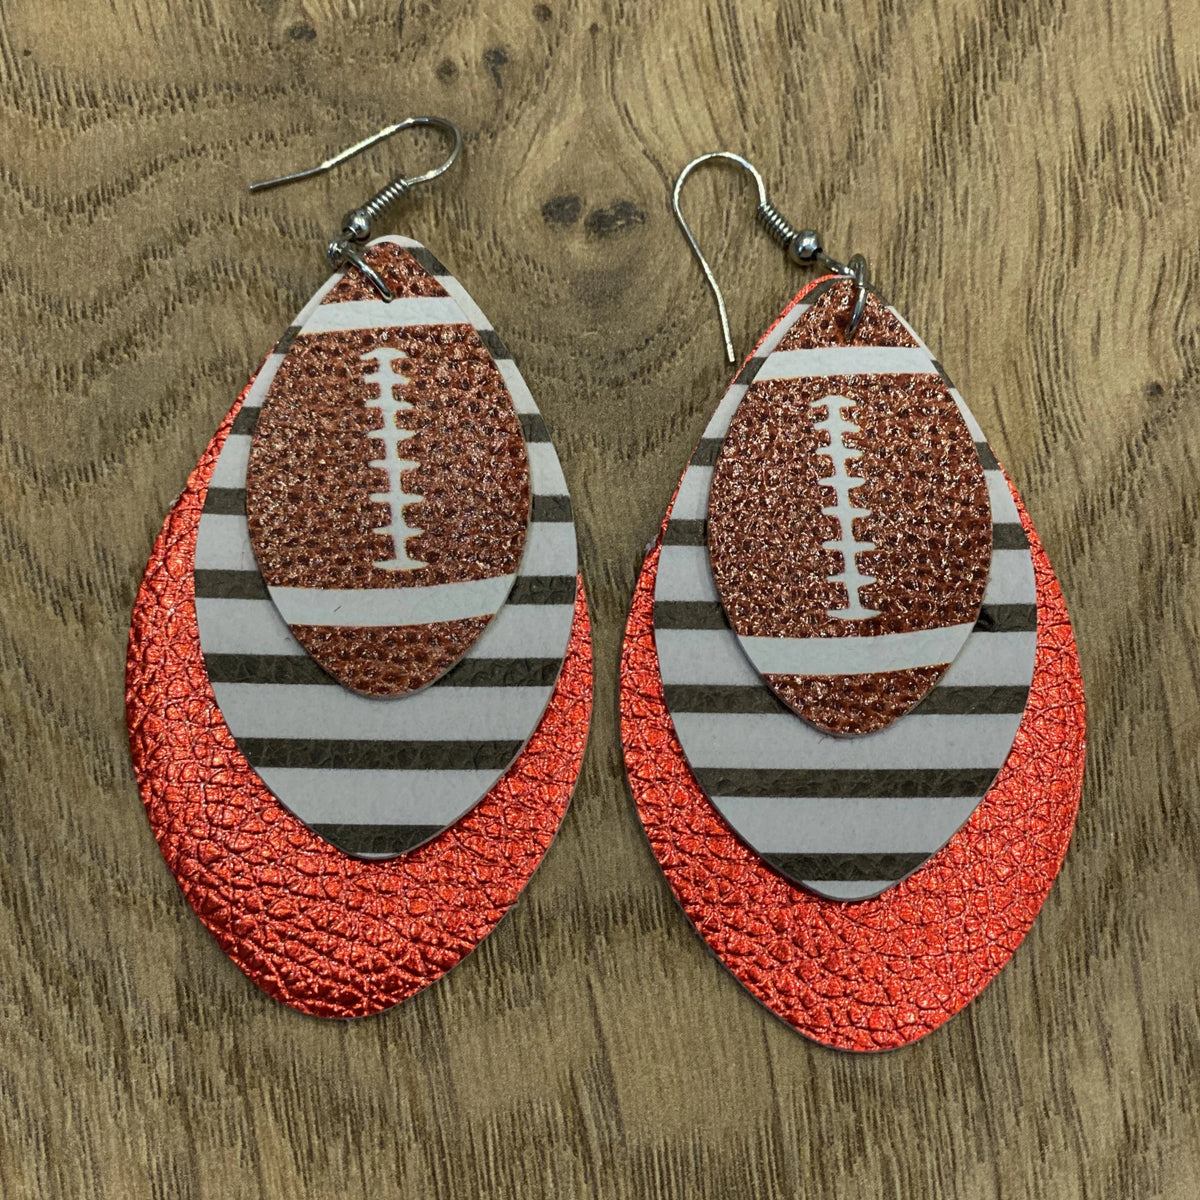 W&W Football Earrings - Black Stripe & Red